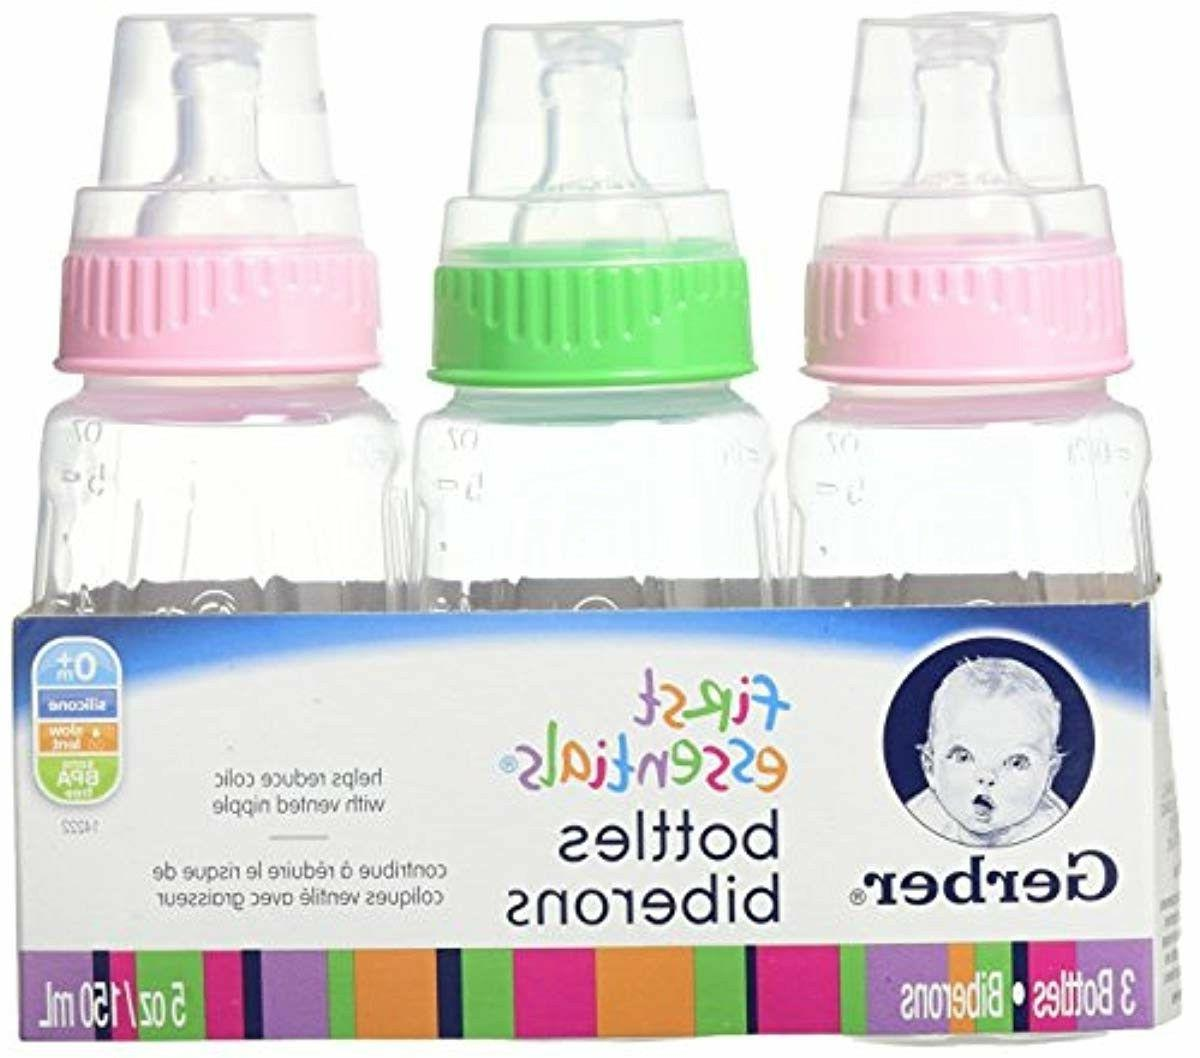 NUK First Essentials Bottle, Girl, Slow 5 Ounce